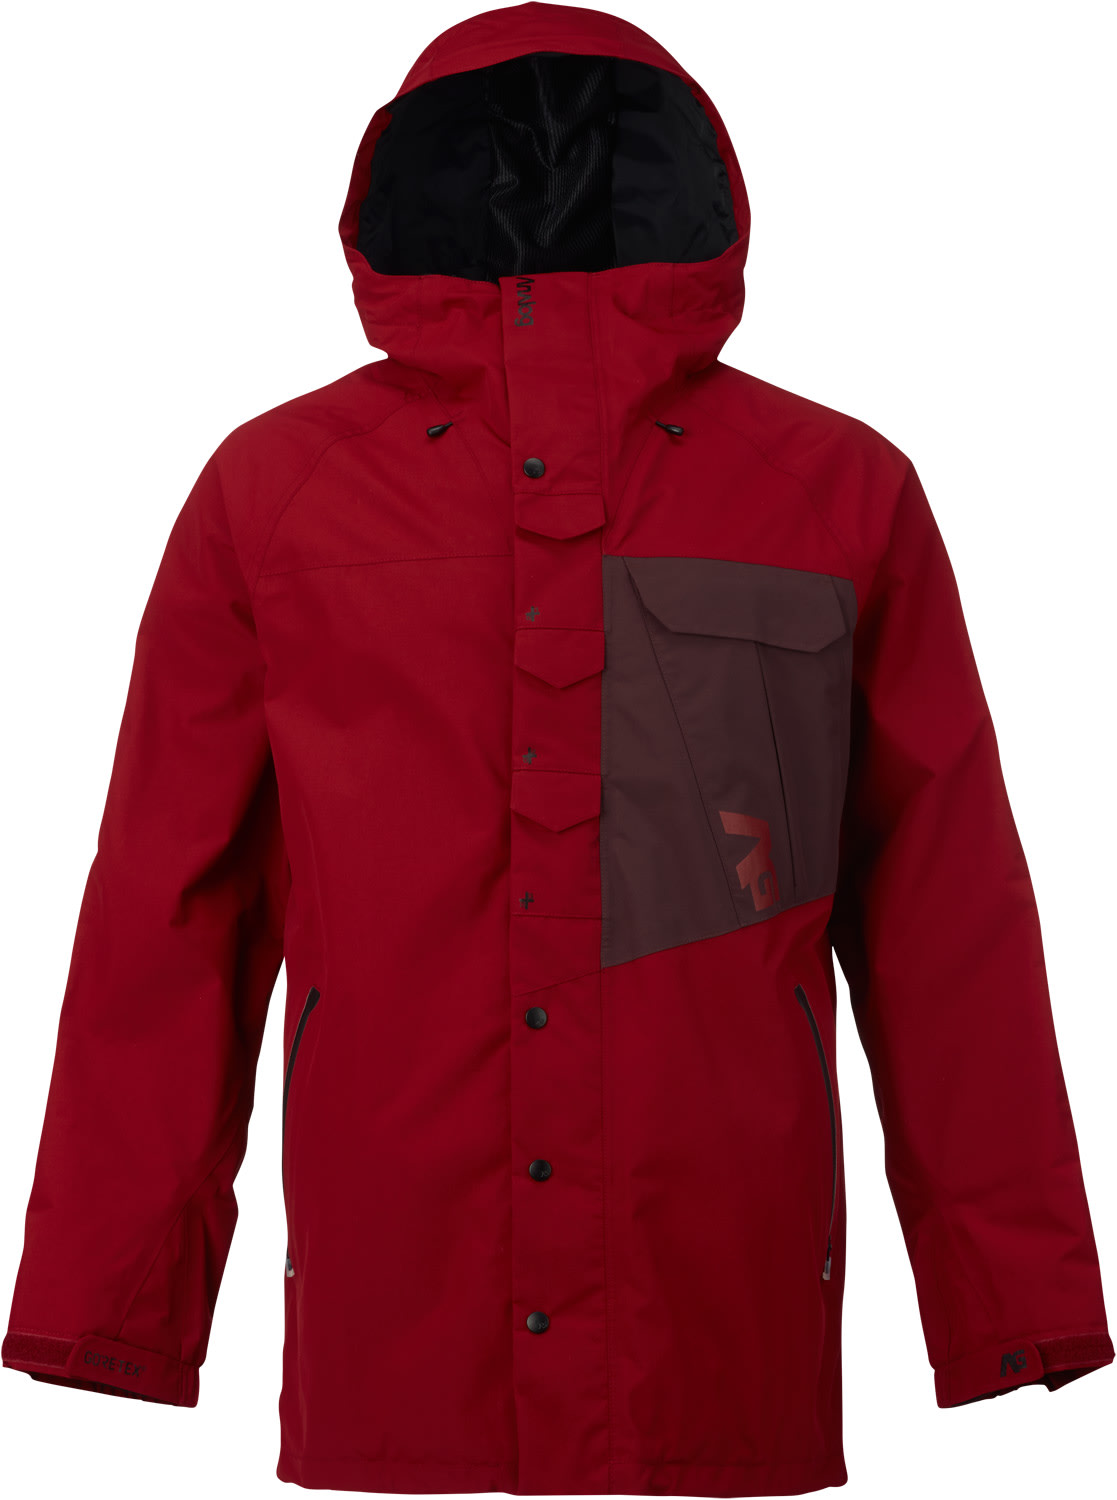 analog zenith gore tex snowboard jacket. Black Bedroom Furniture Sets. Home Design Ideas